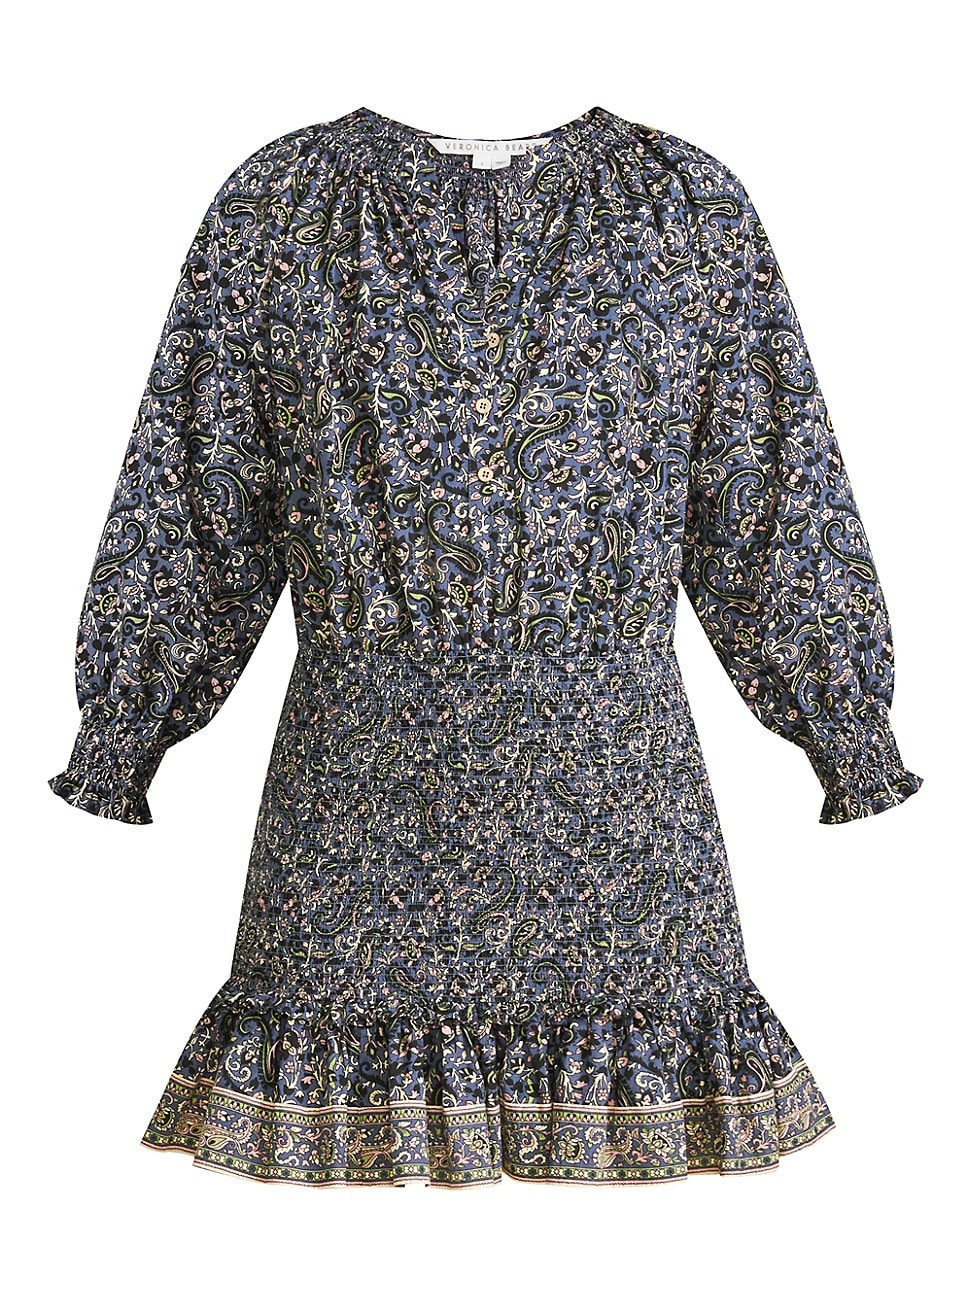 Veronica Beard WOMEN'S KARLINA PRINTED SMOCKED MINI DRESS